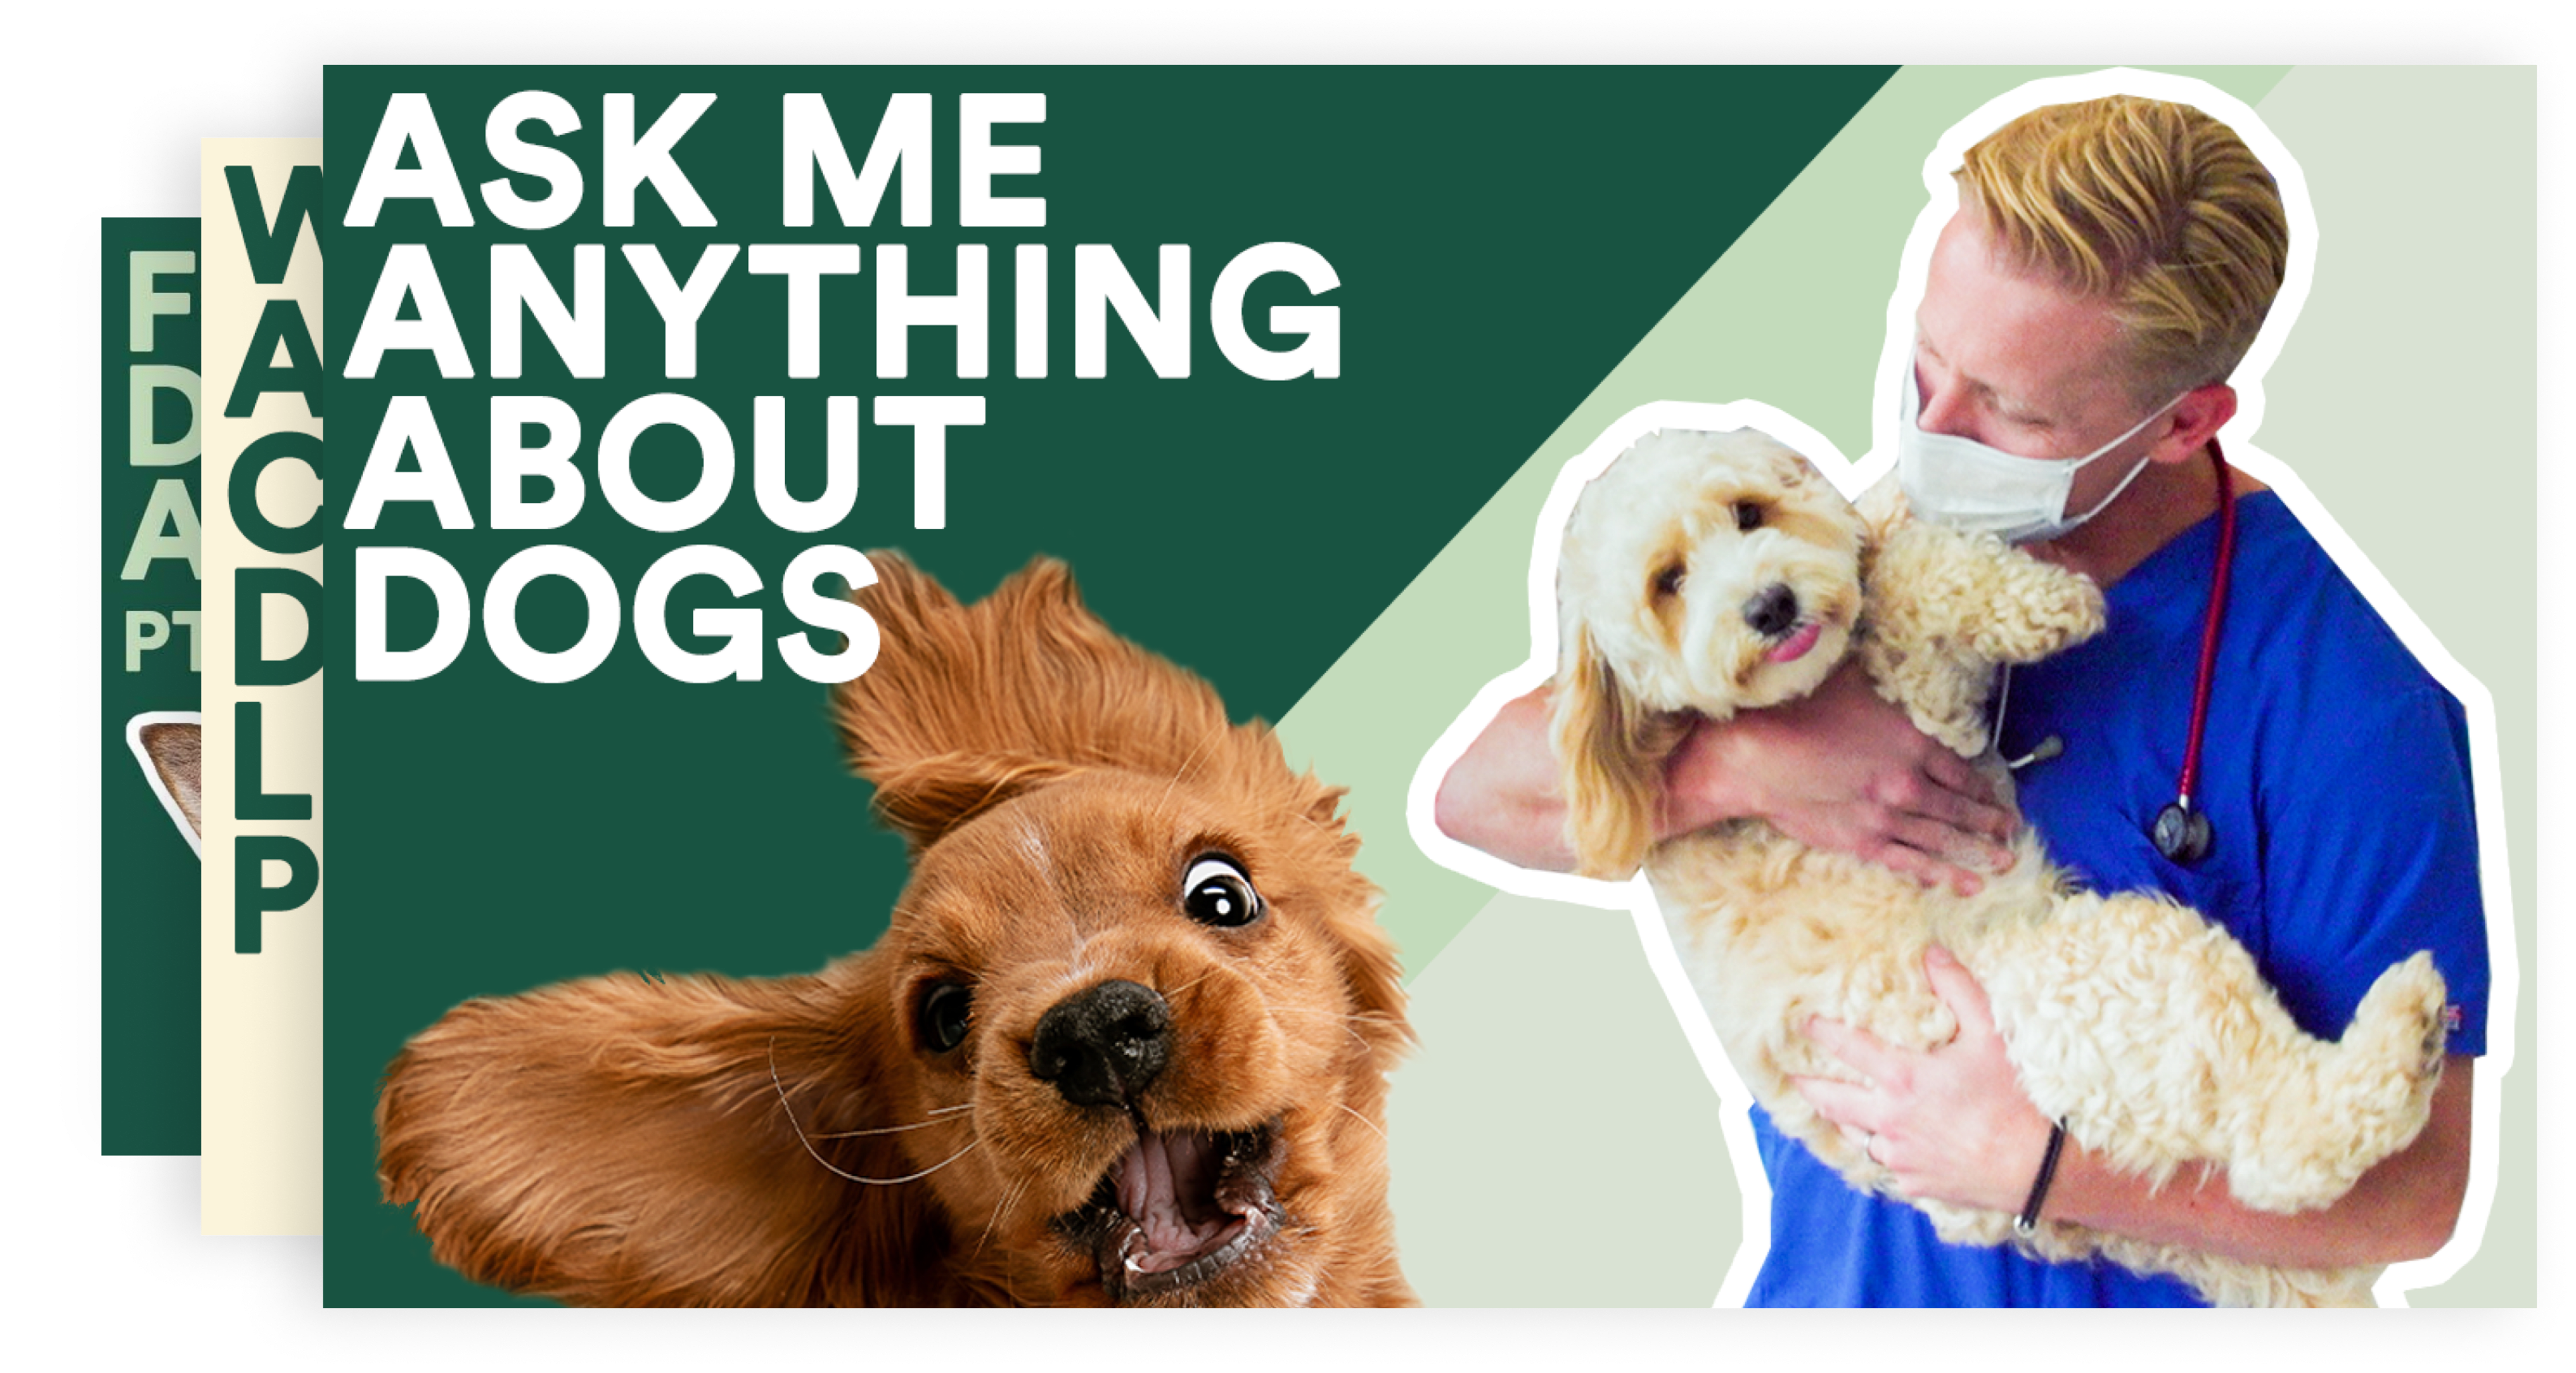 Ask me anything about dogs